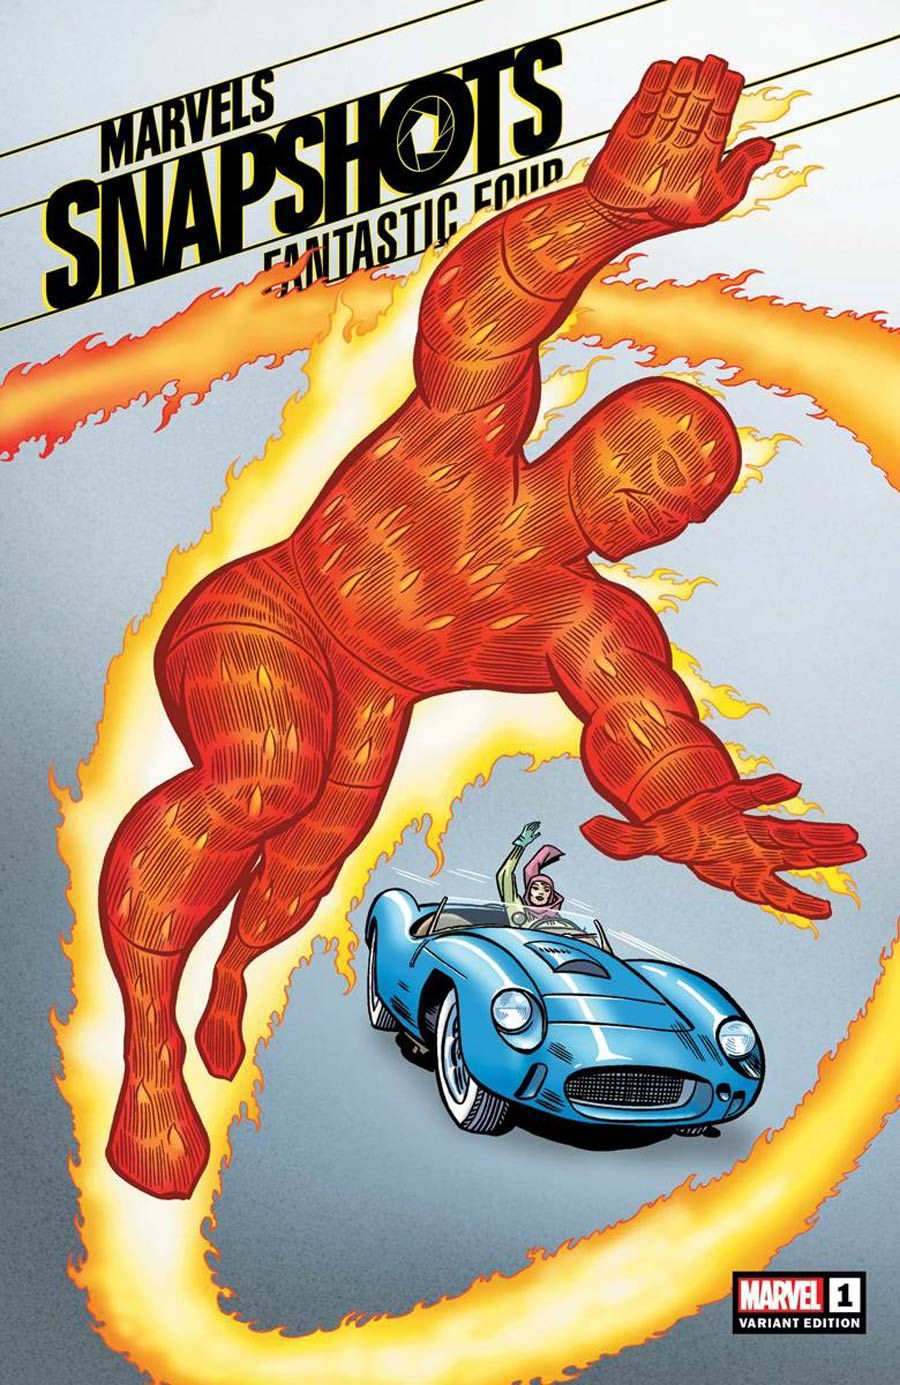 Fantastic Four Marvels Snapshots #1 Cover C Incentive Jack Kirby Hidden Gem Variant Cover